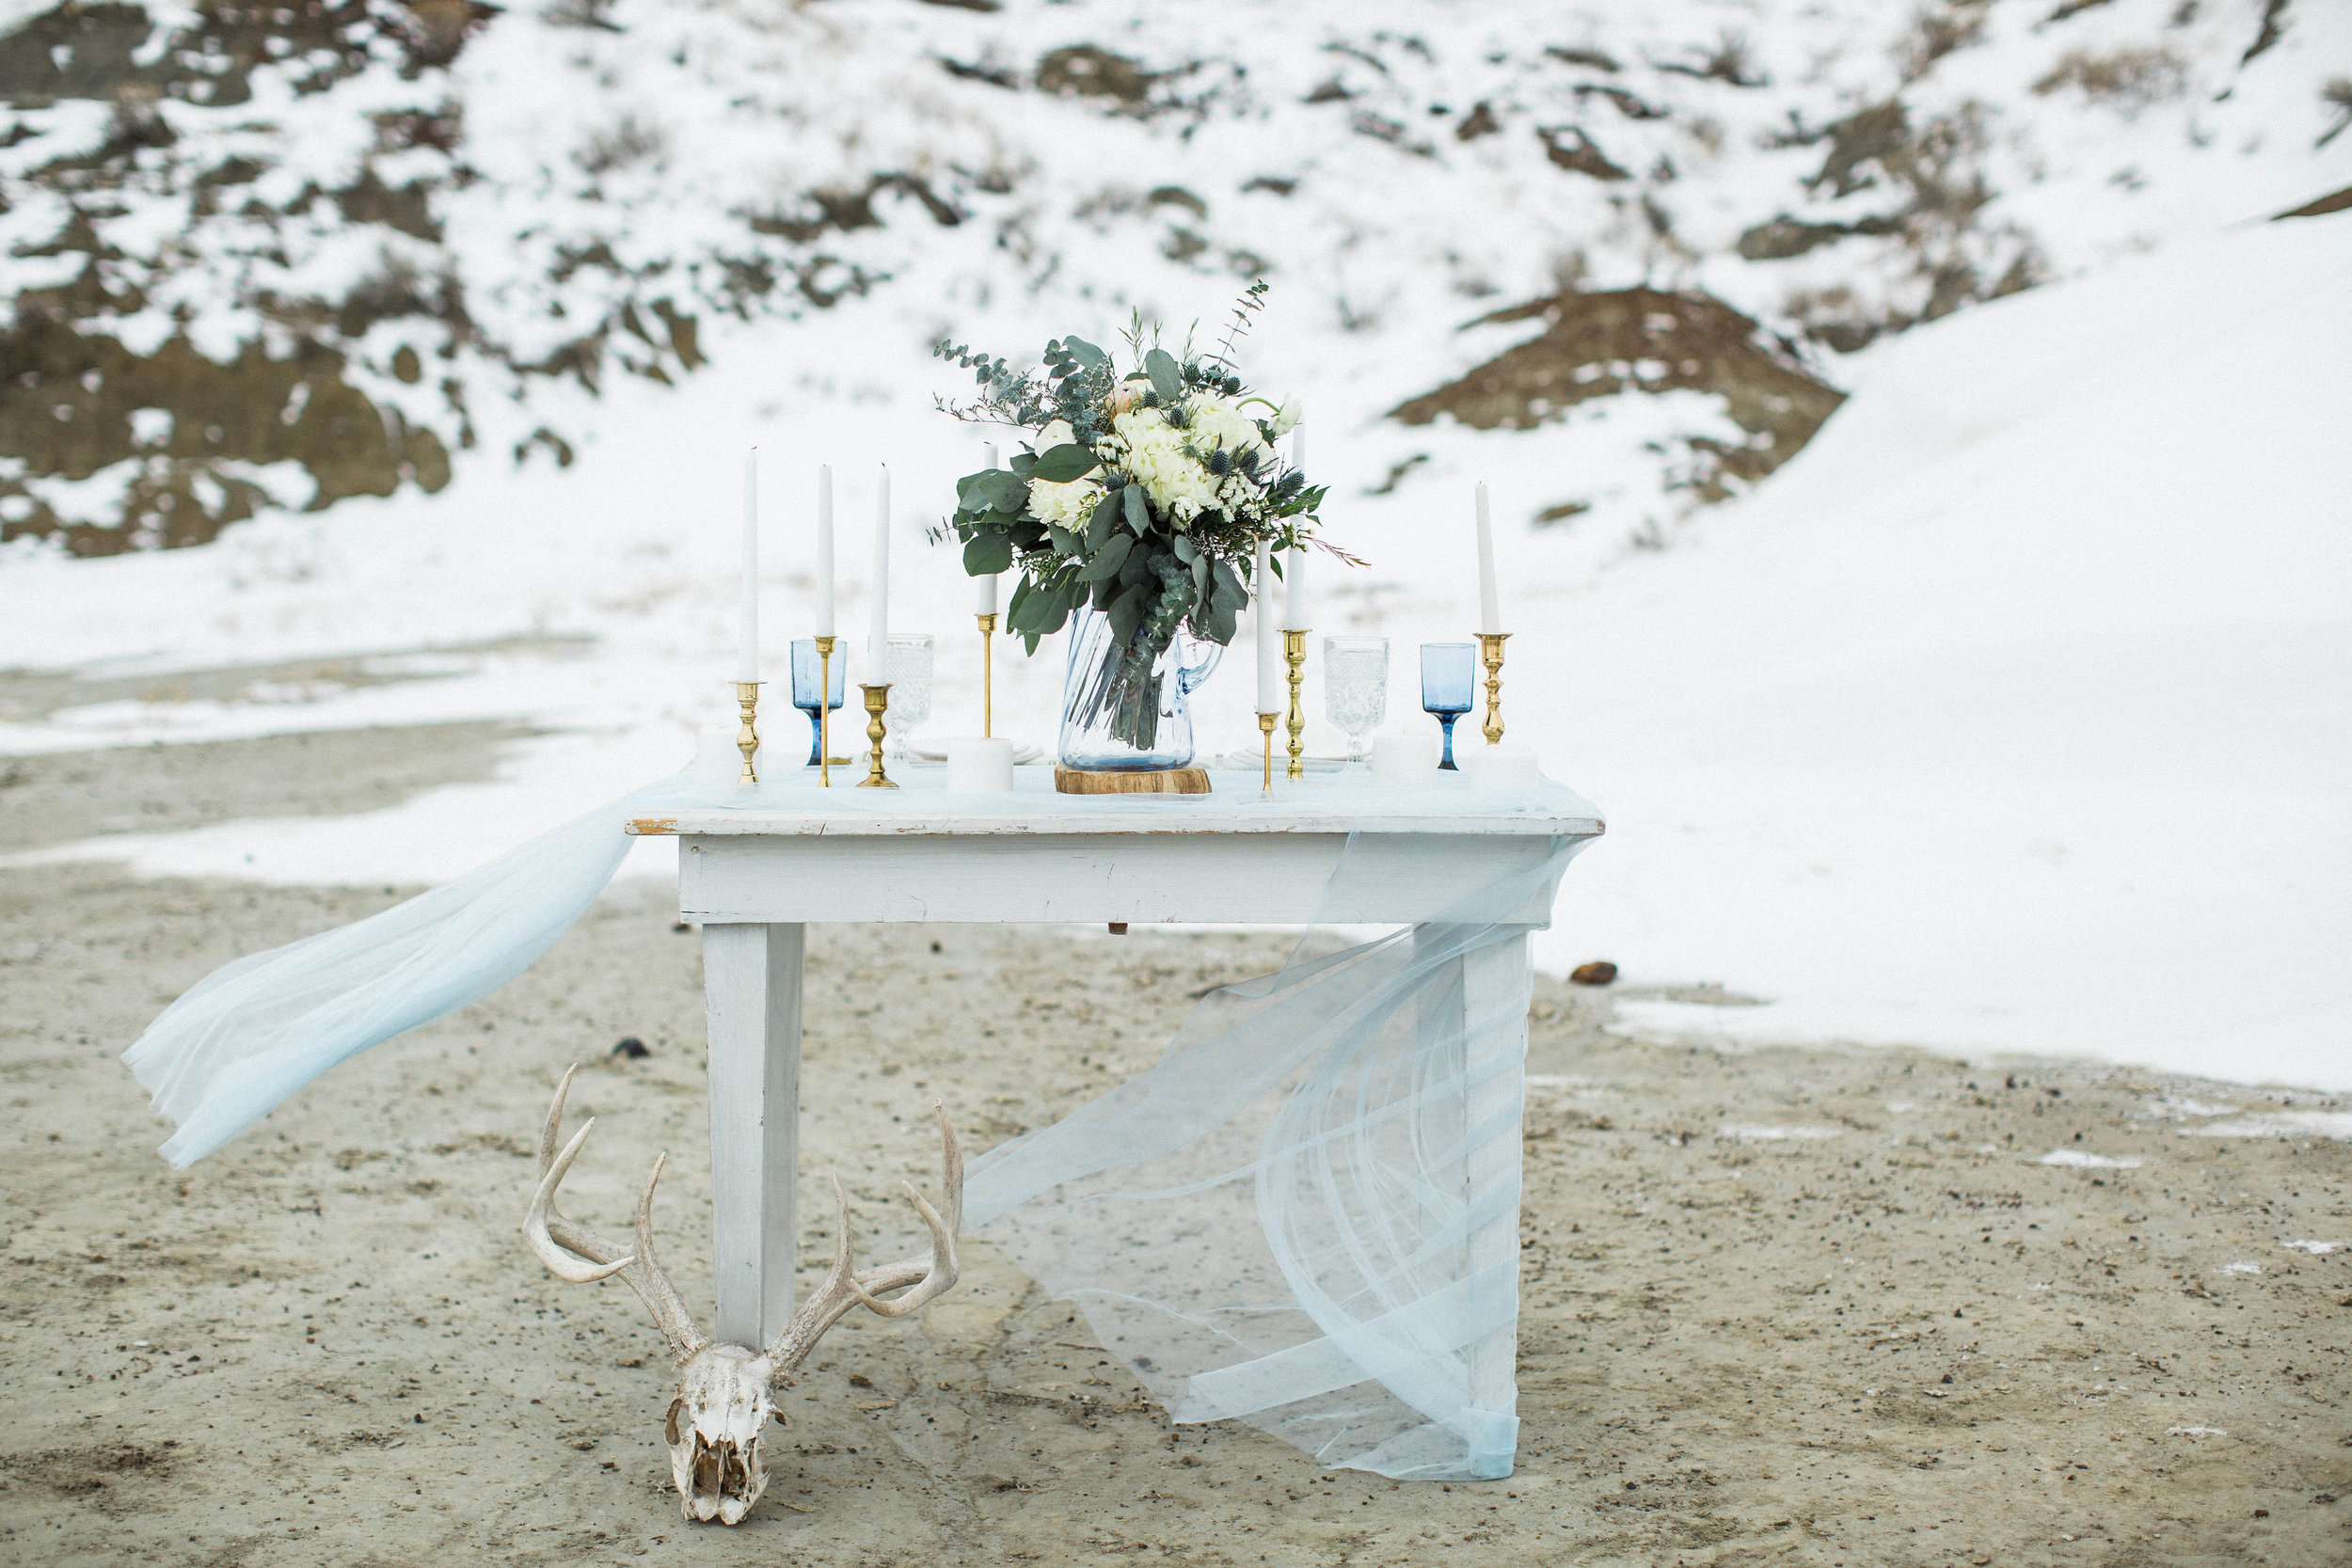 Tables - Tables are always a must at weddings and showers. Why not ditch the standard folding table for a beautiful vintage piece?From head tables to dessert tables, we've got what you need.